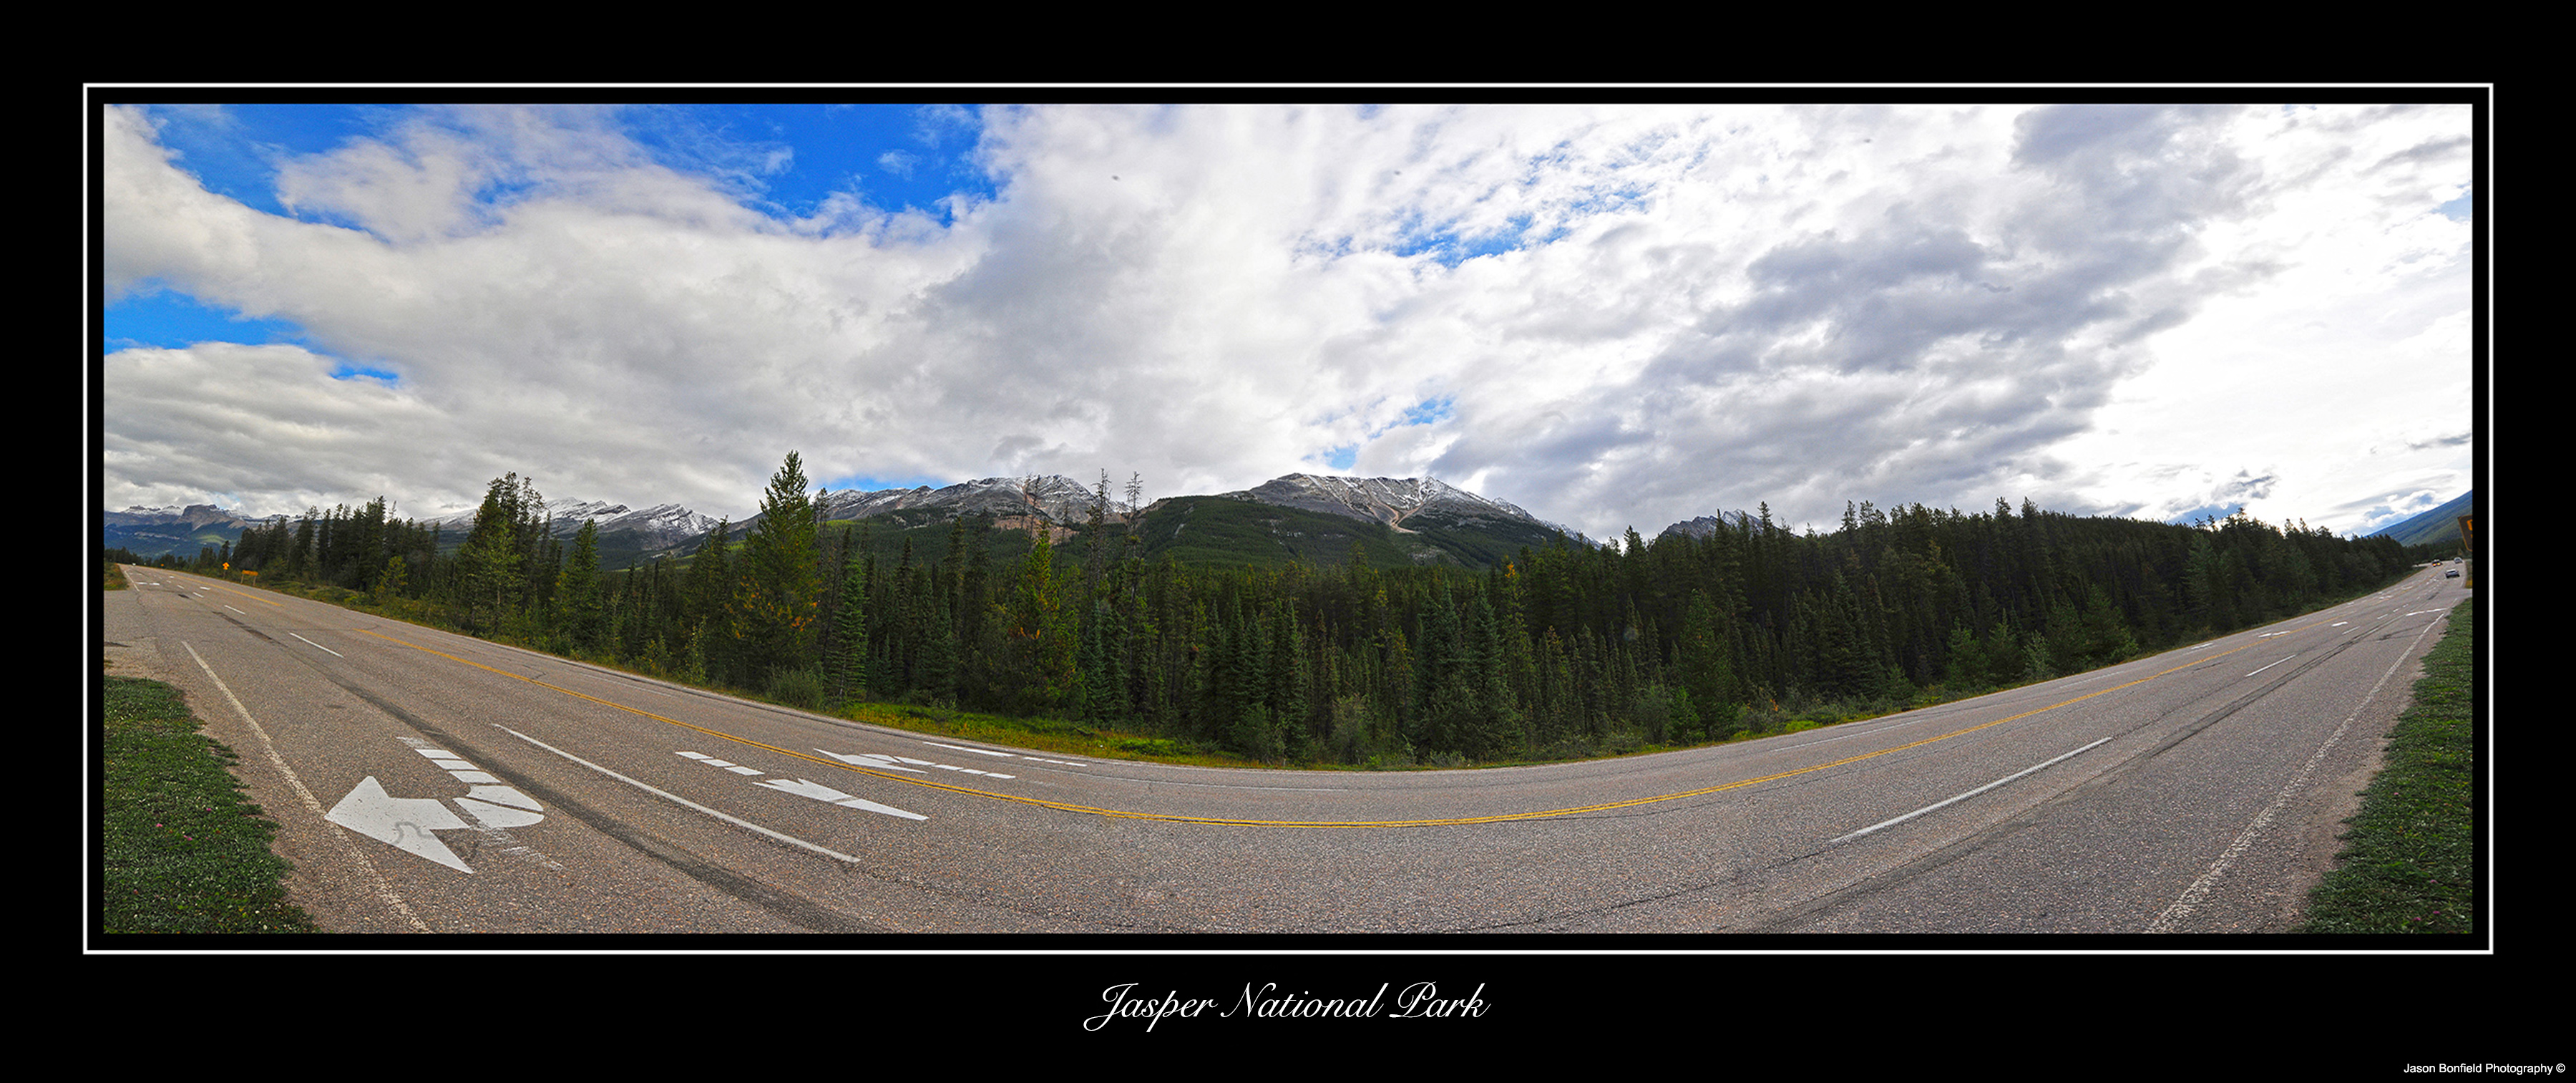 Wide angle,  panoramic landscape picture of a road and mountains with a blue sky with white clouds in Jasper National Park, Alberta, Canada.